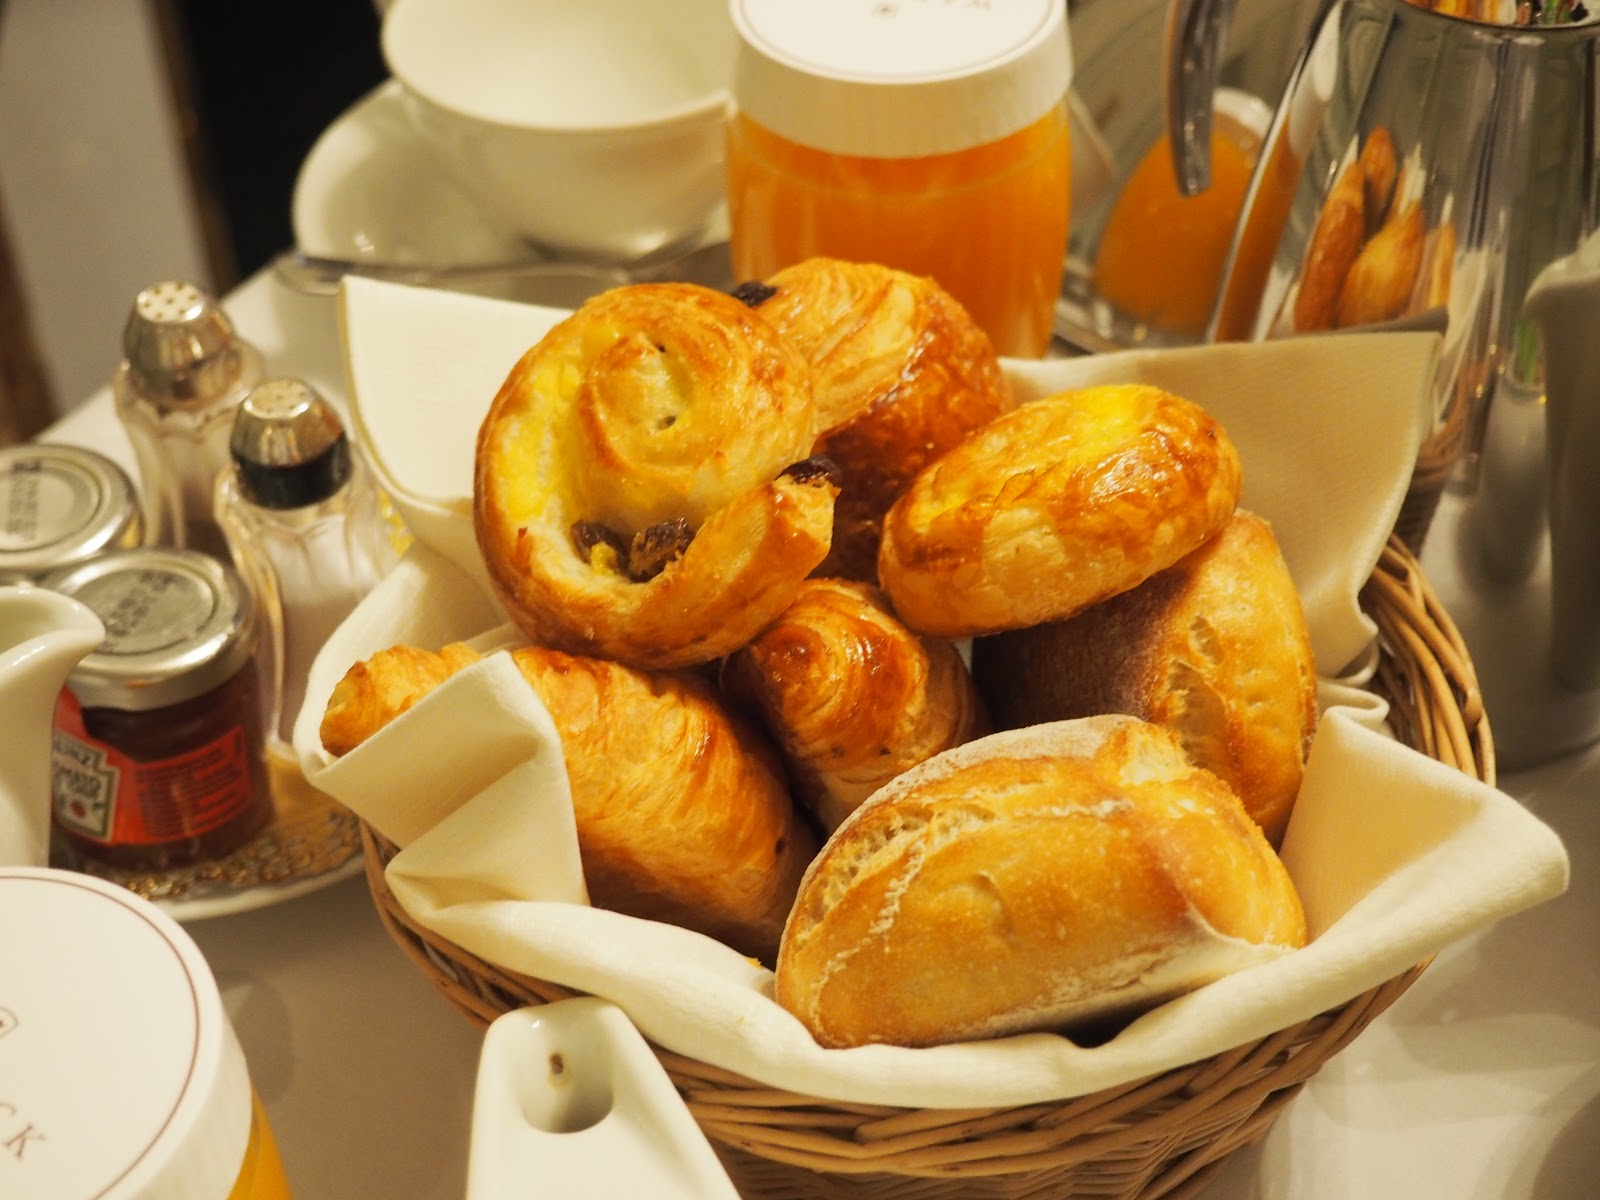 Basket of patisserie on white table cloth